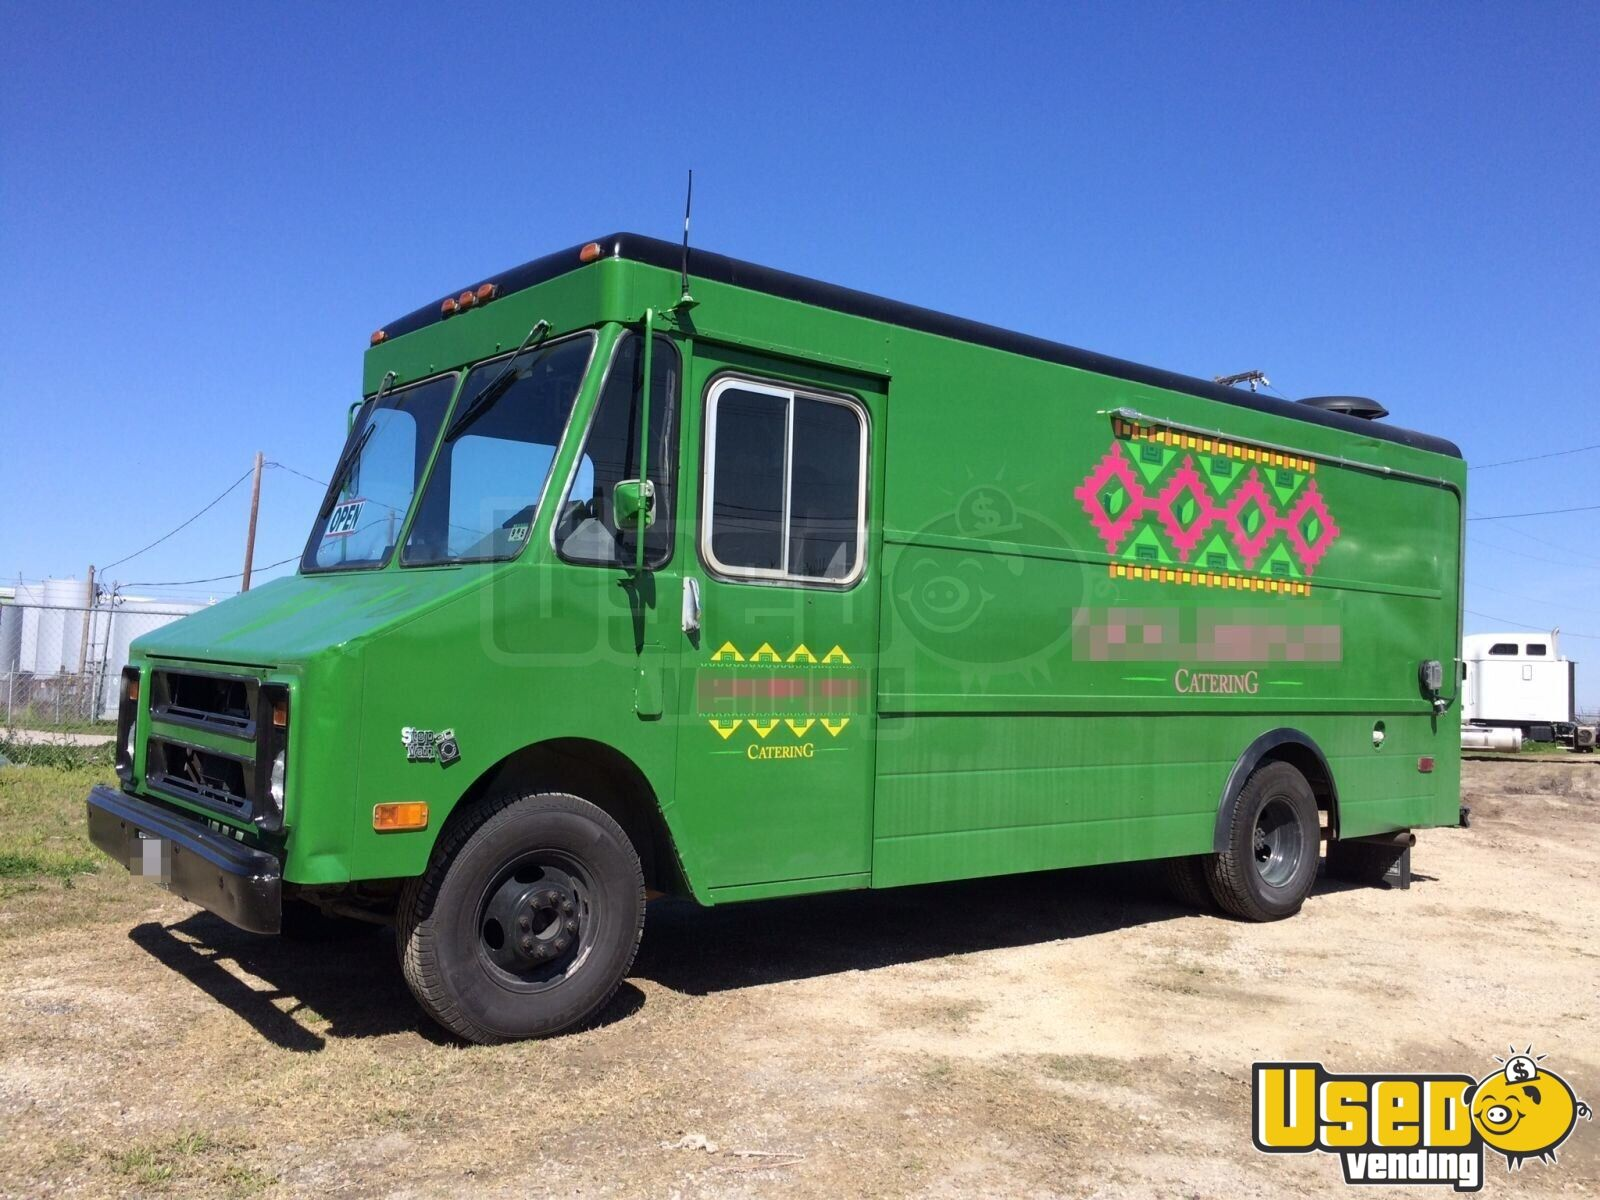 chevy food truck in texas for sale used food truck. Black Bedroom Furniture Sets. Home Design Ideas